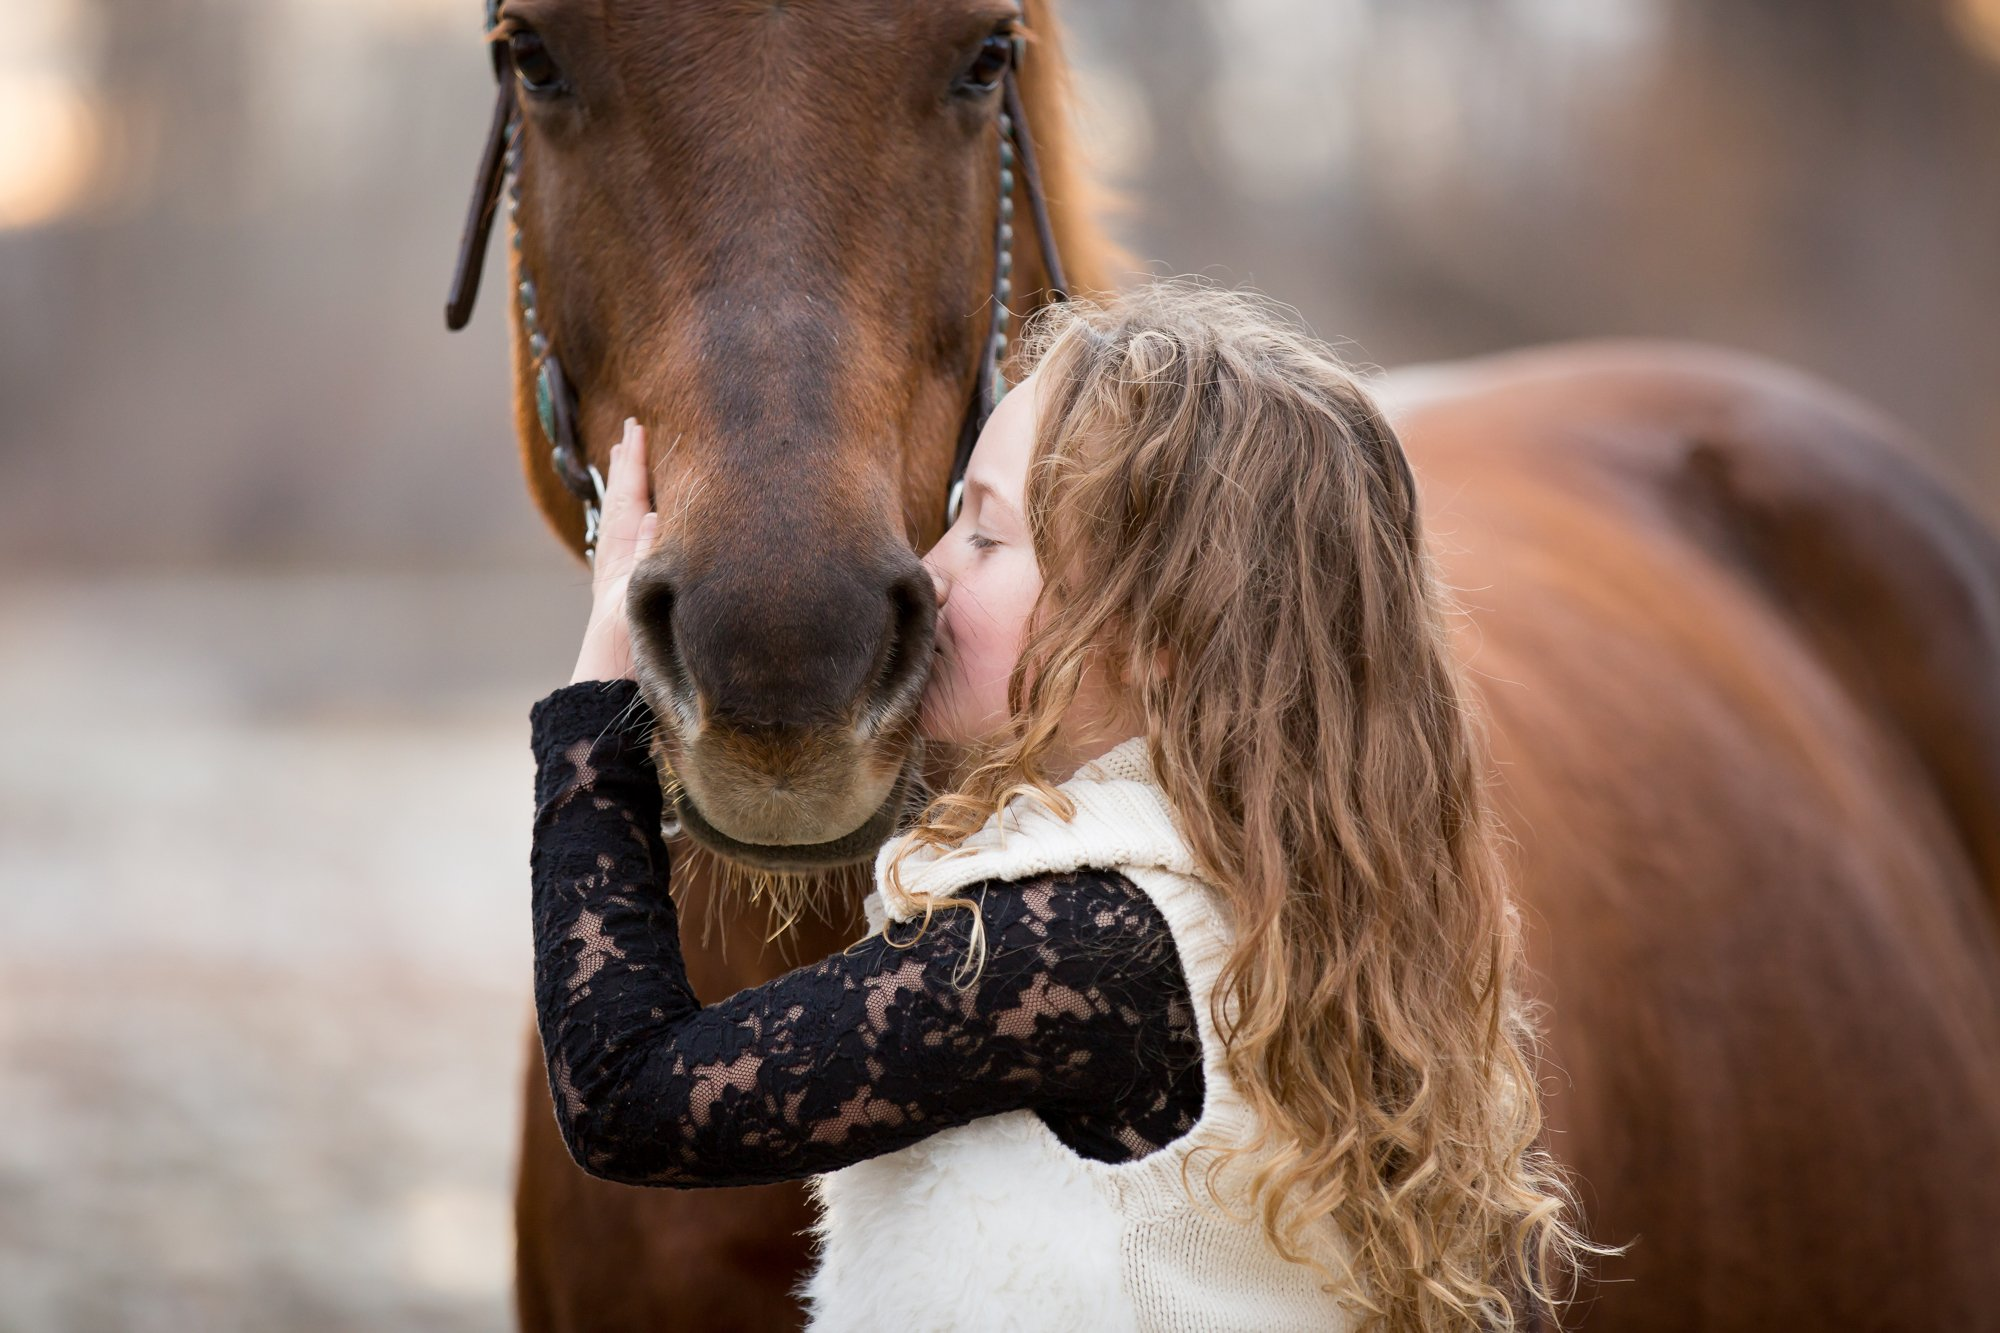 A girl kisssing her horse on the nose